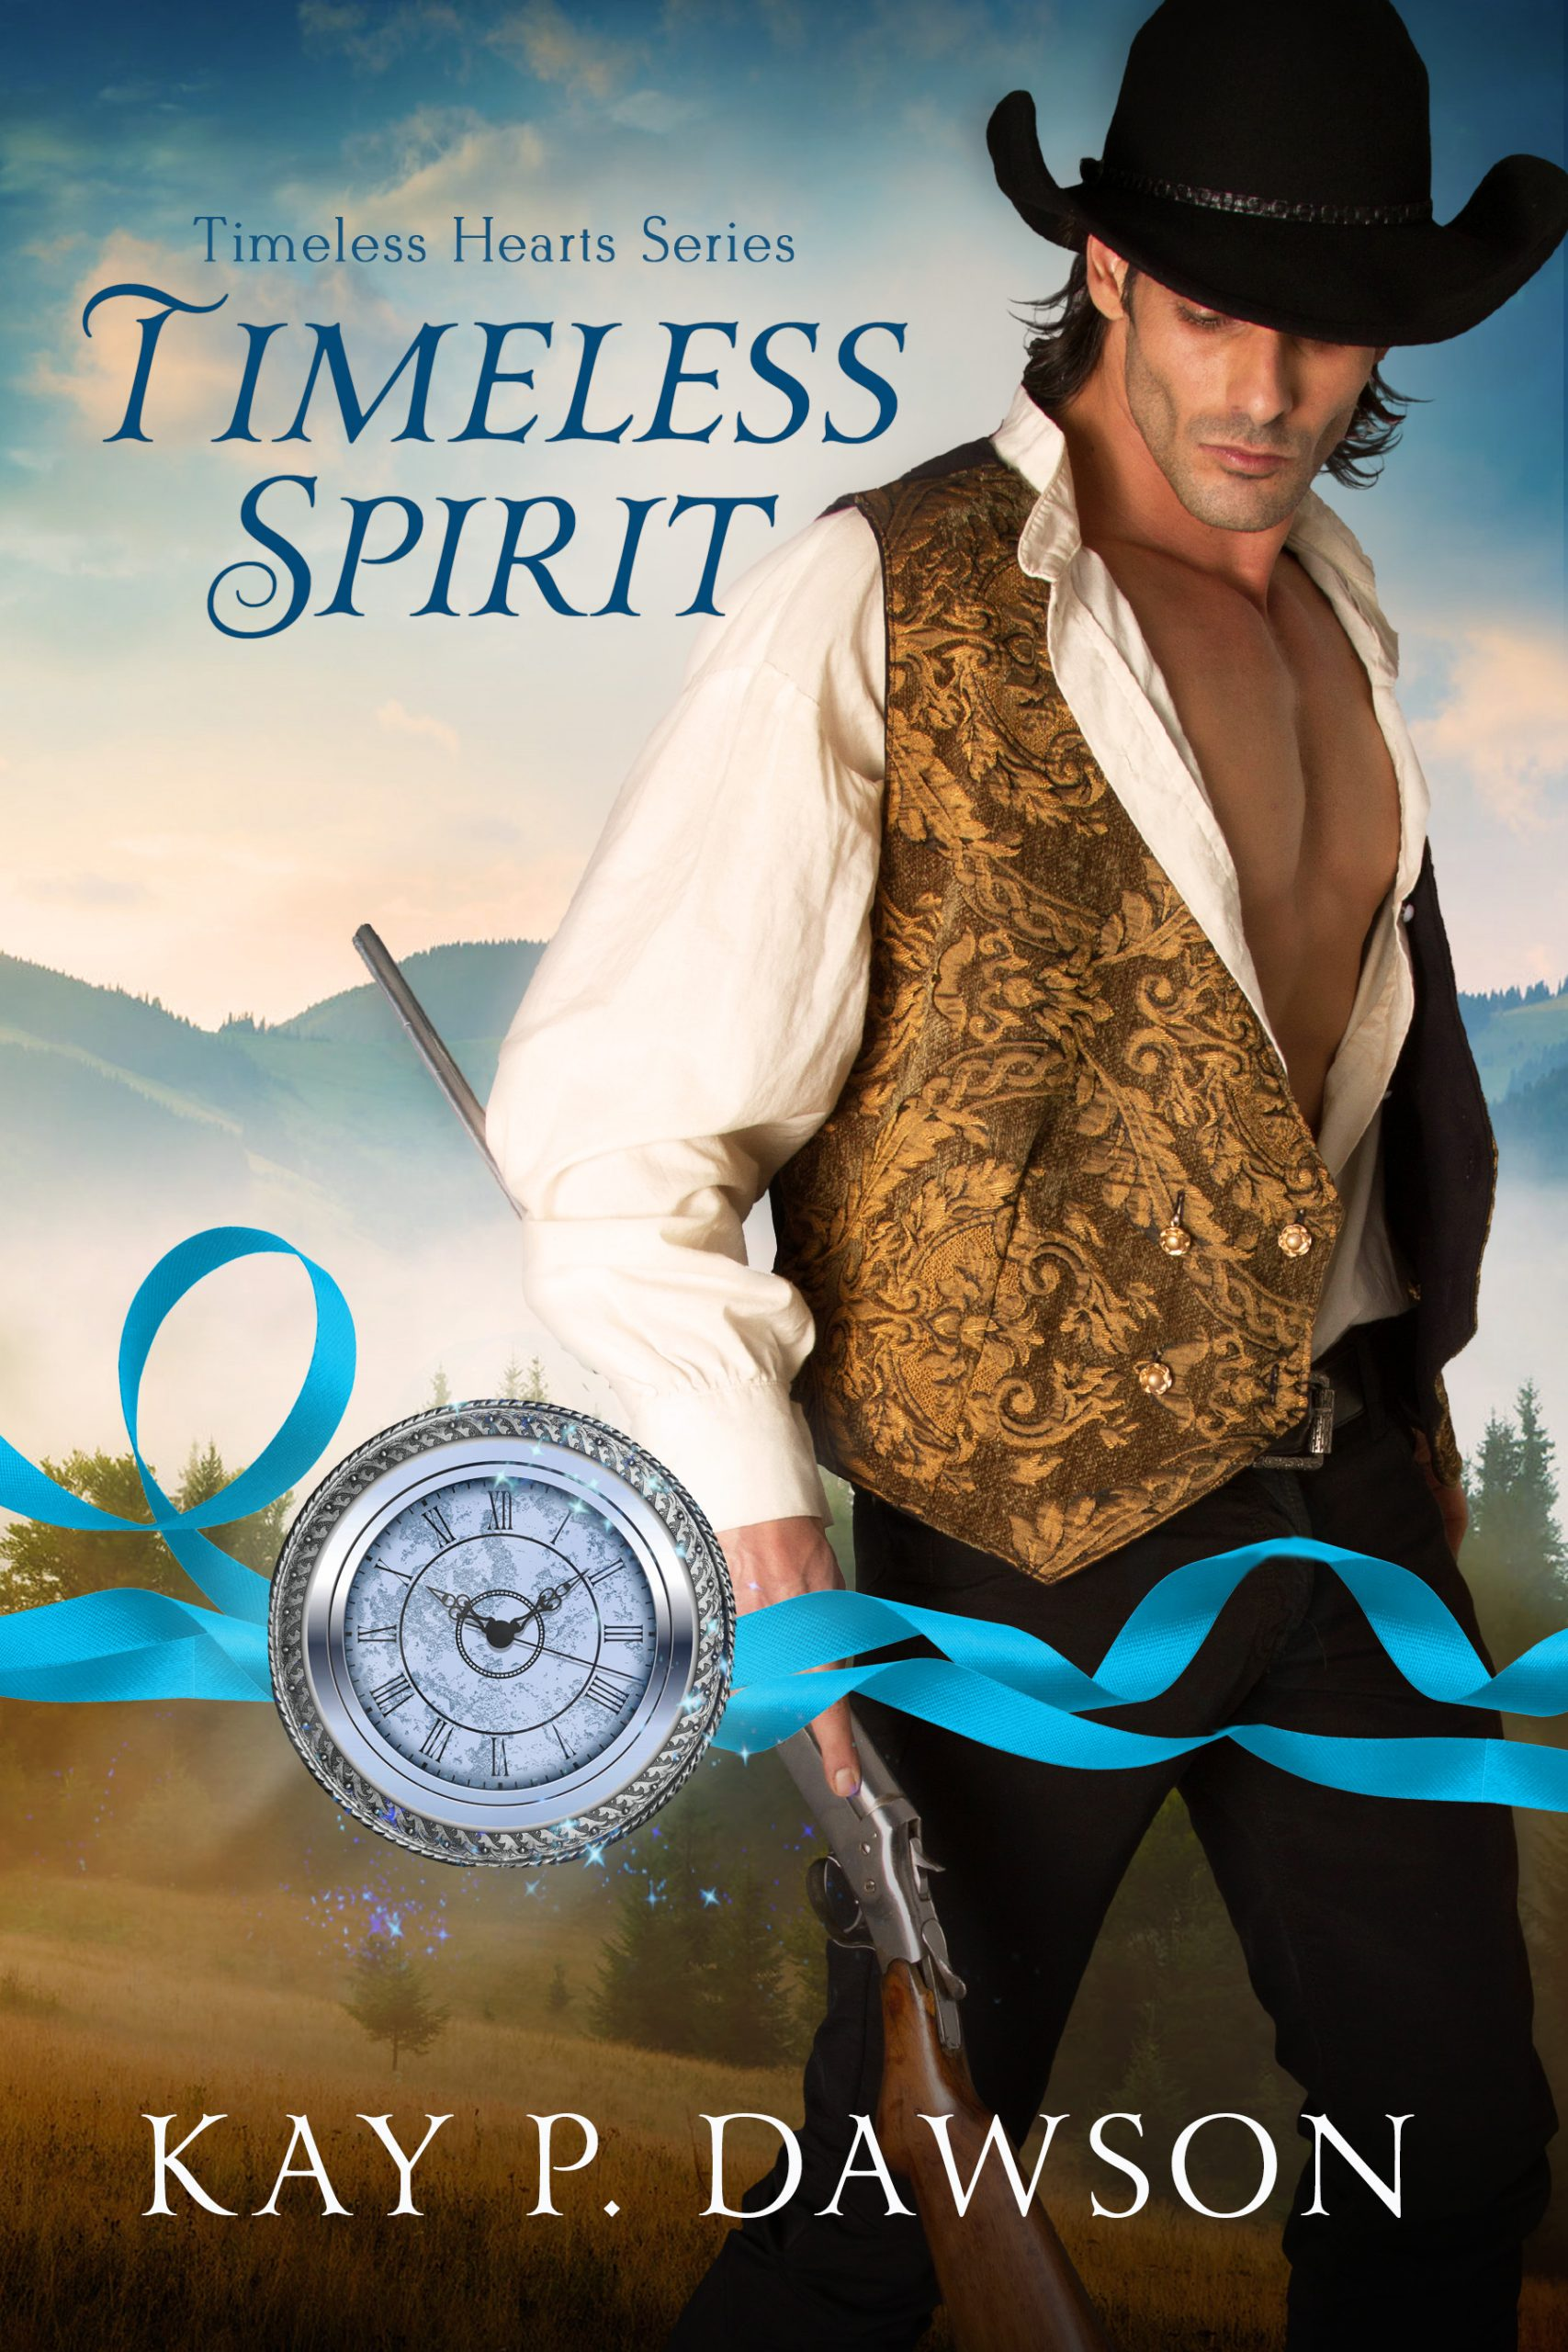 Timeless Spirit - Timeless Hearts Series